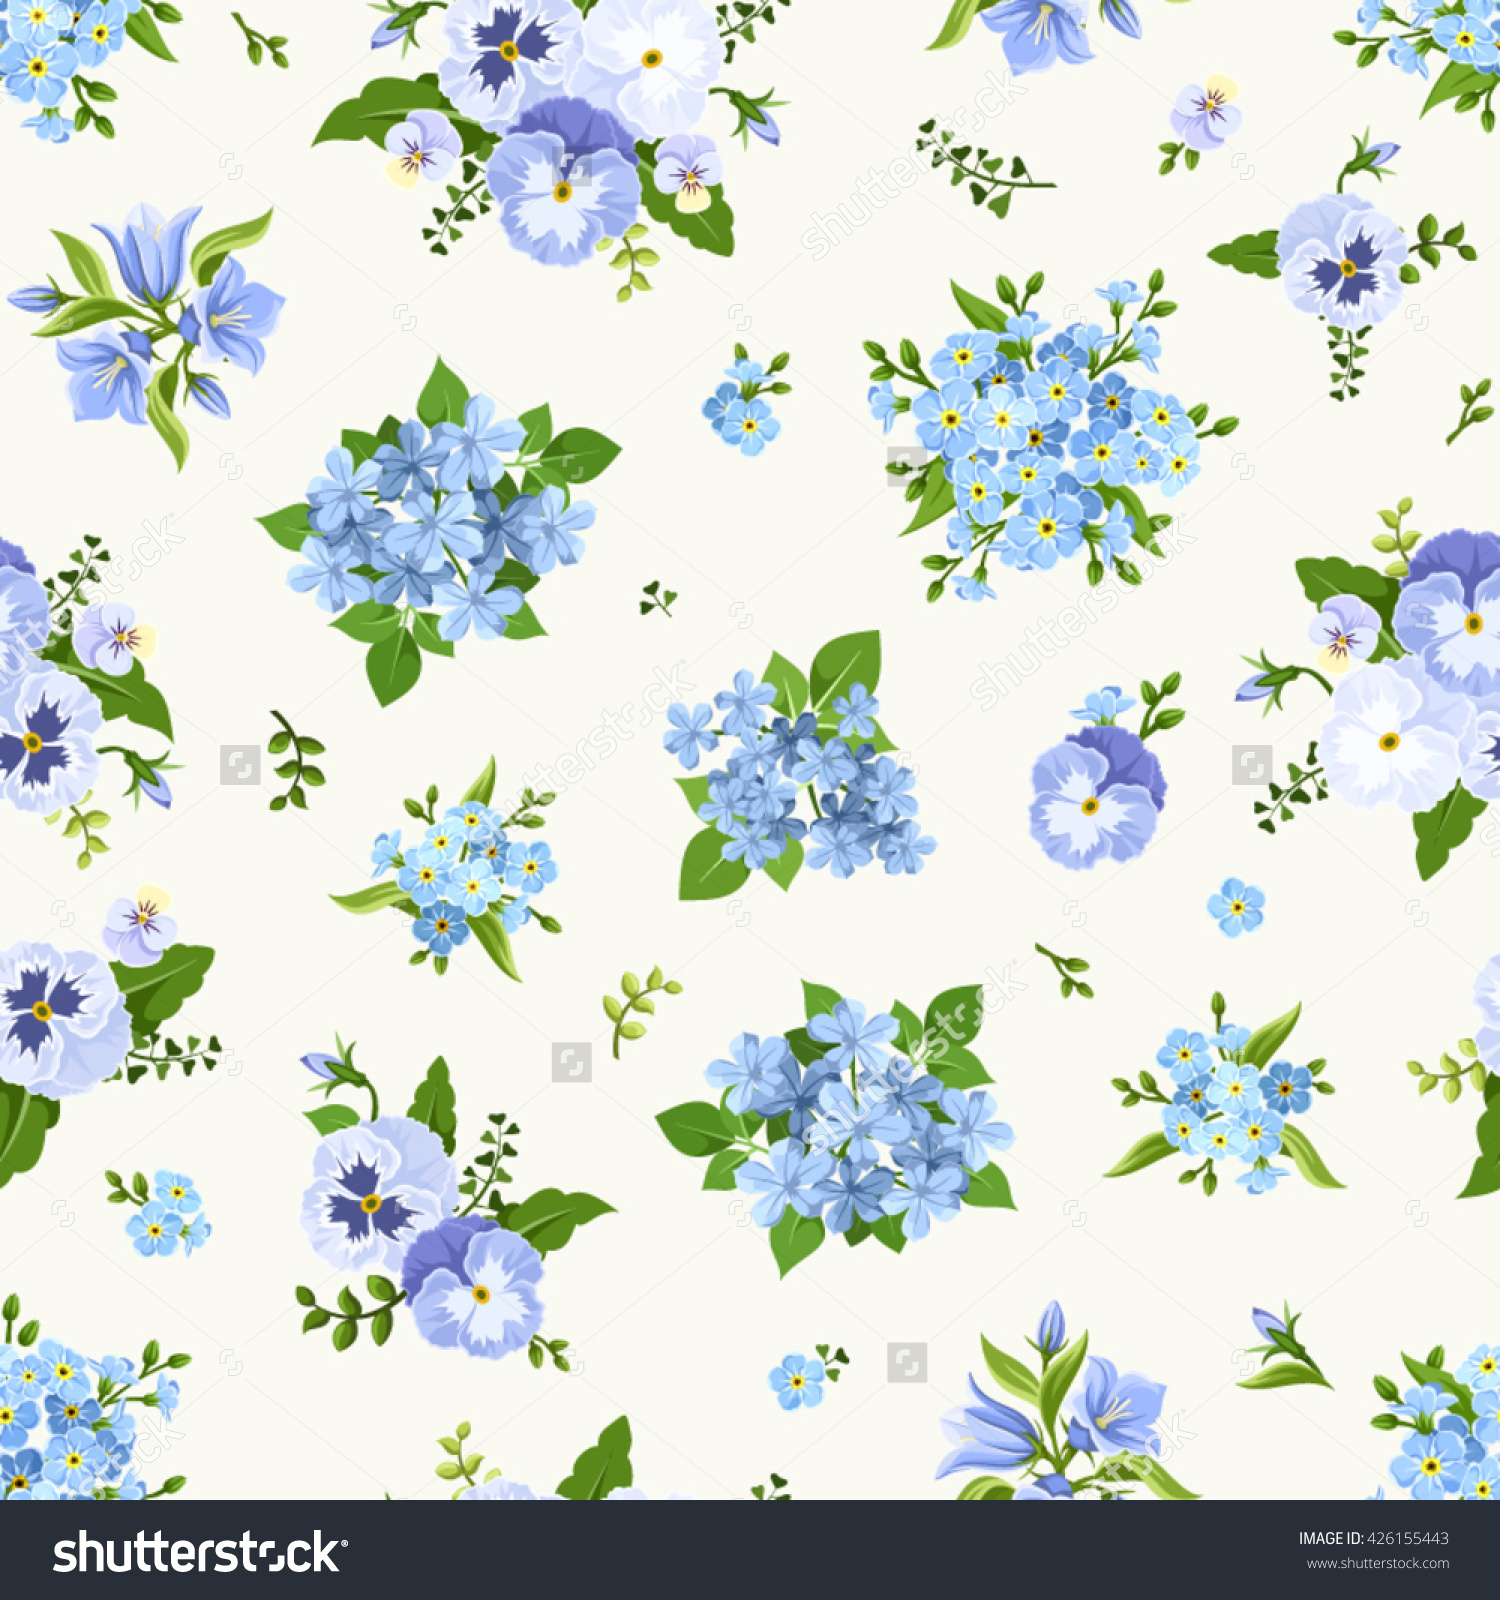 Vector Seamless Pattern With Blue Pansies, Bluebells, Plumbago And.